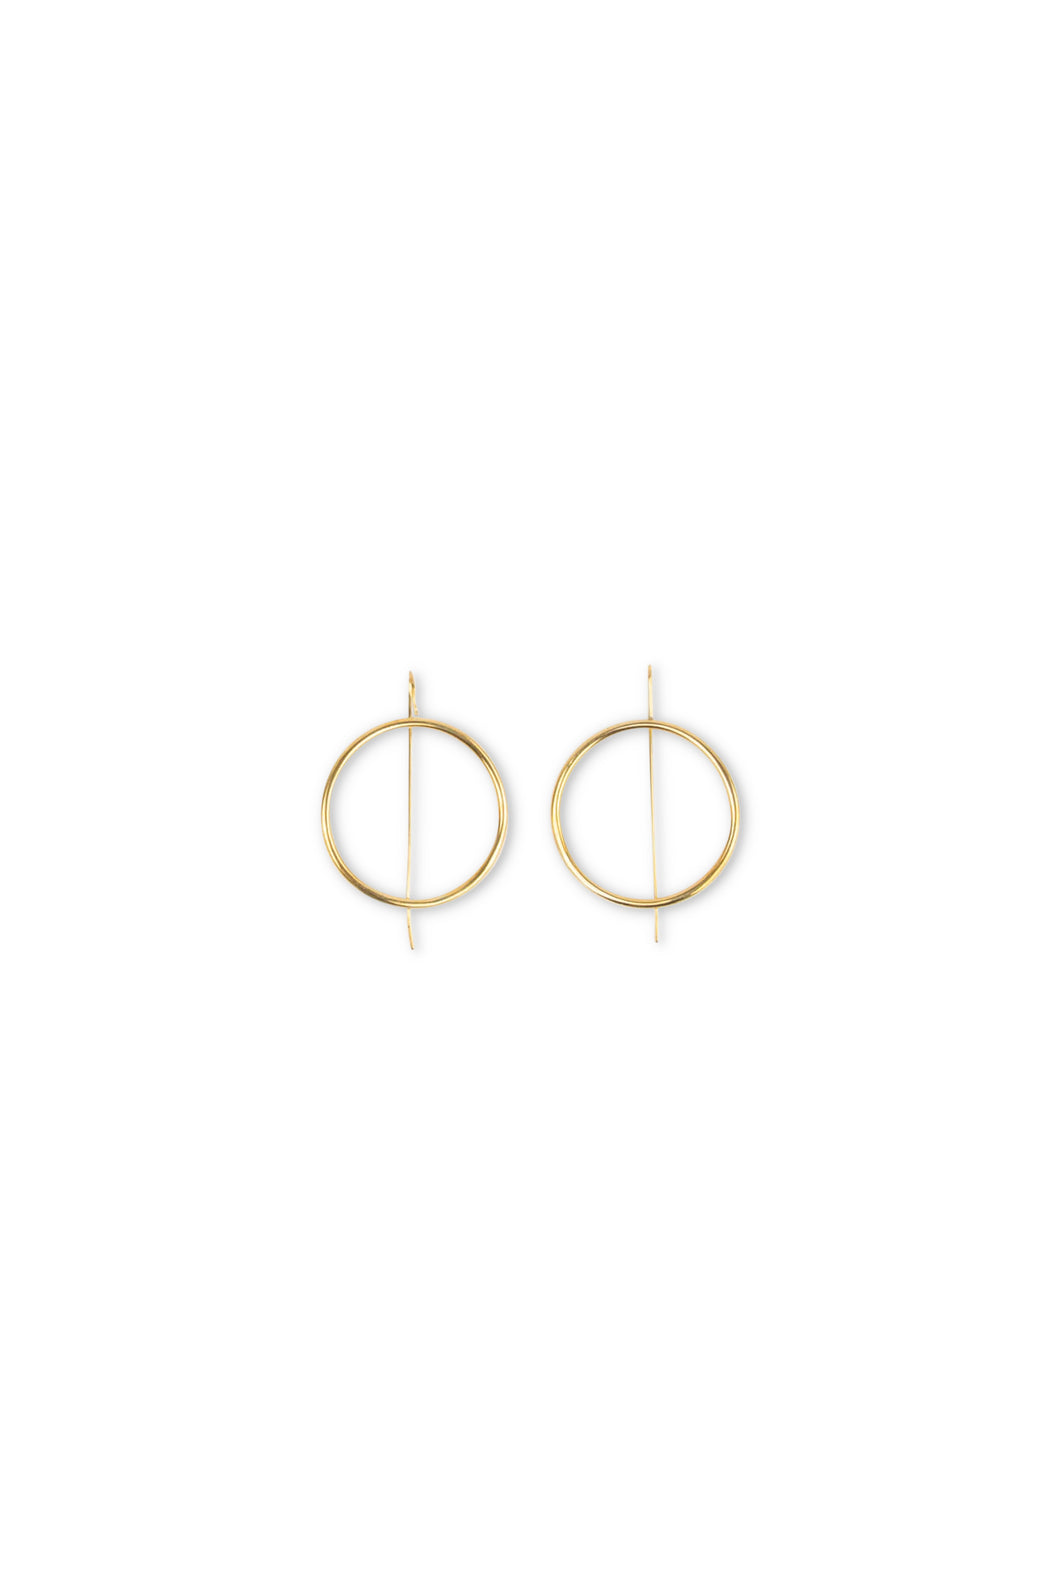 Noonday Collection: Halcyon Hoops